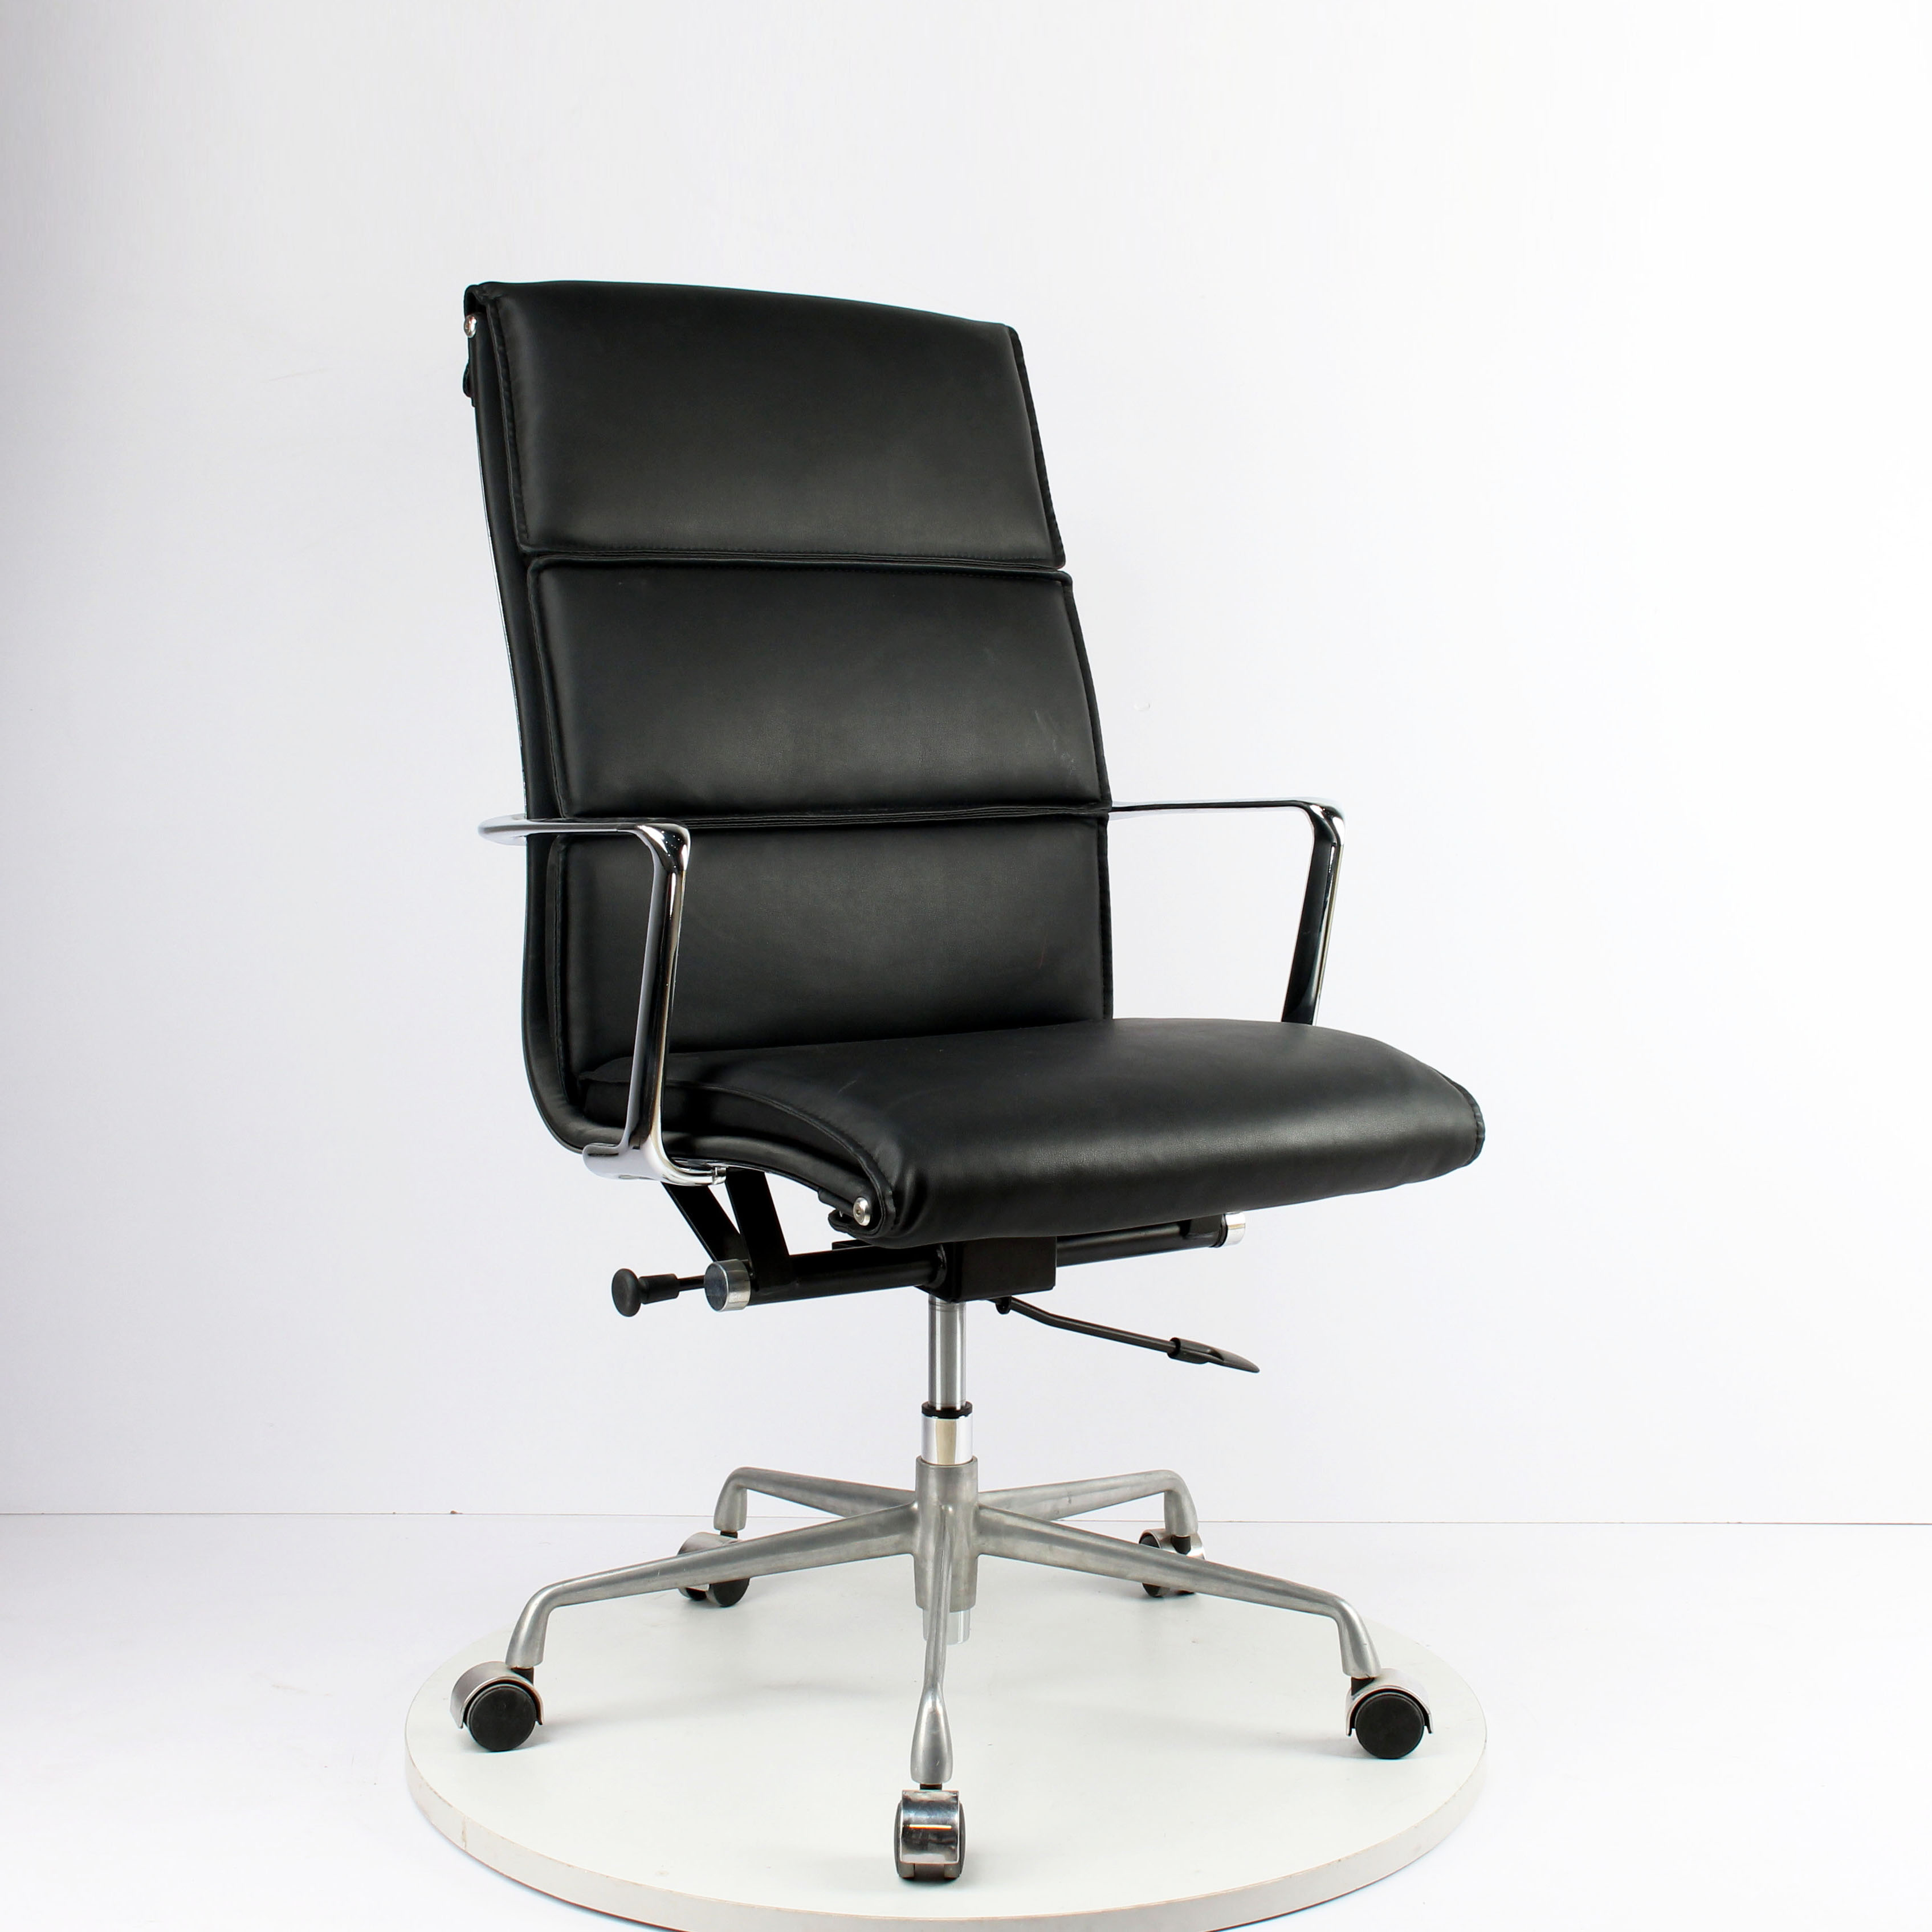 Picture of: Memory Foam Office Chair Office Chair And Commercial Furniture General Use And Office Chair Buy Memory Foam Office Chair Office Chair Commercial Furniture General Use And Office Chair Product On Alibaba Com